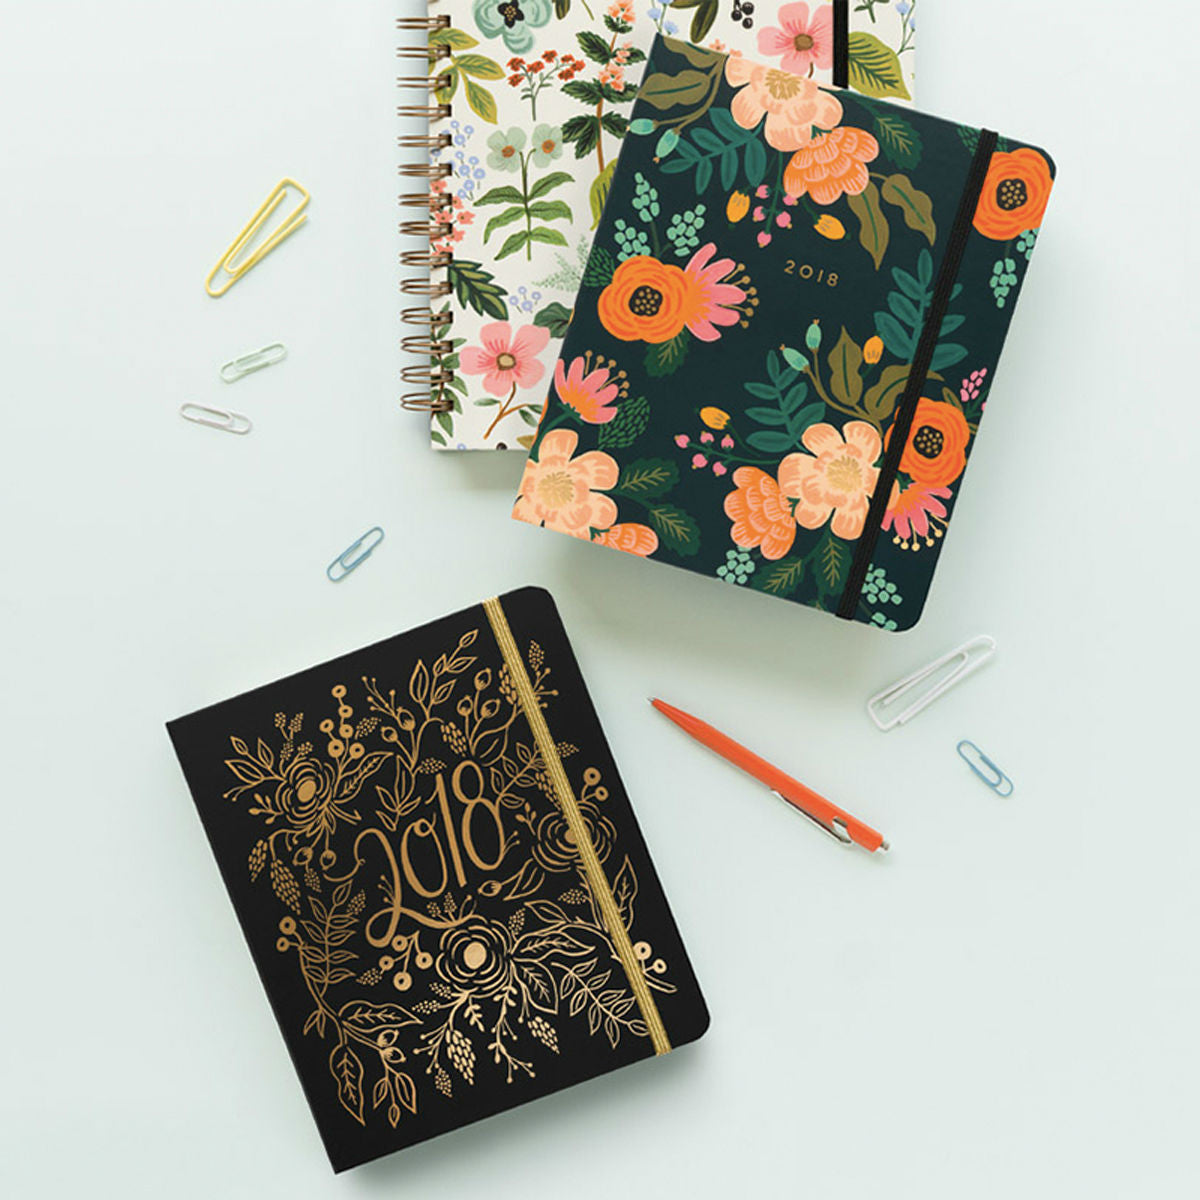 rifle paper co planners 2018